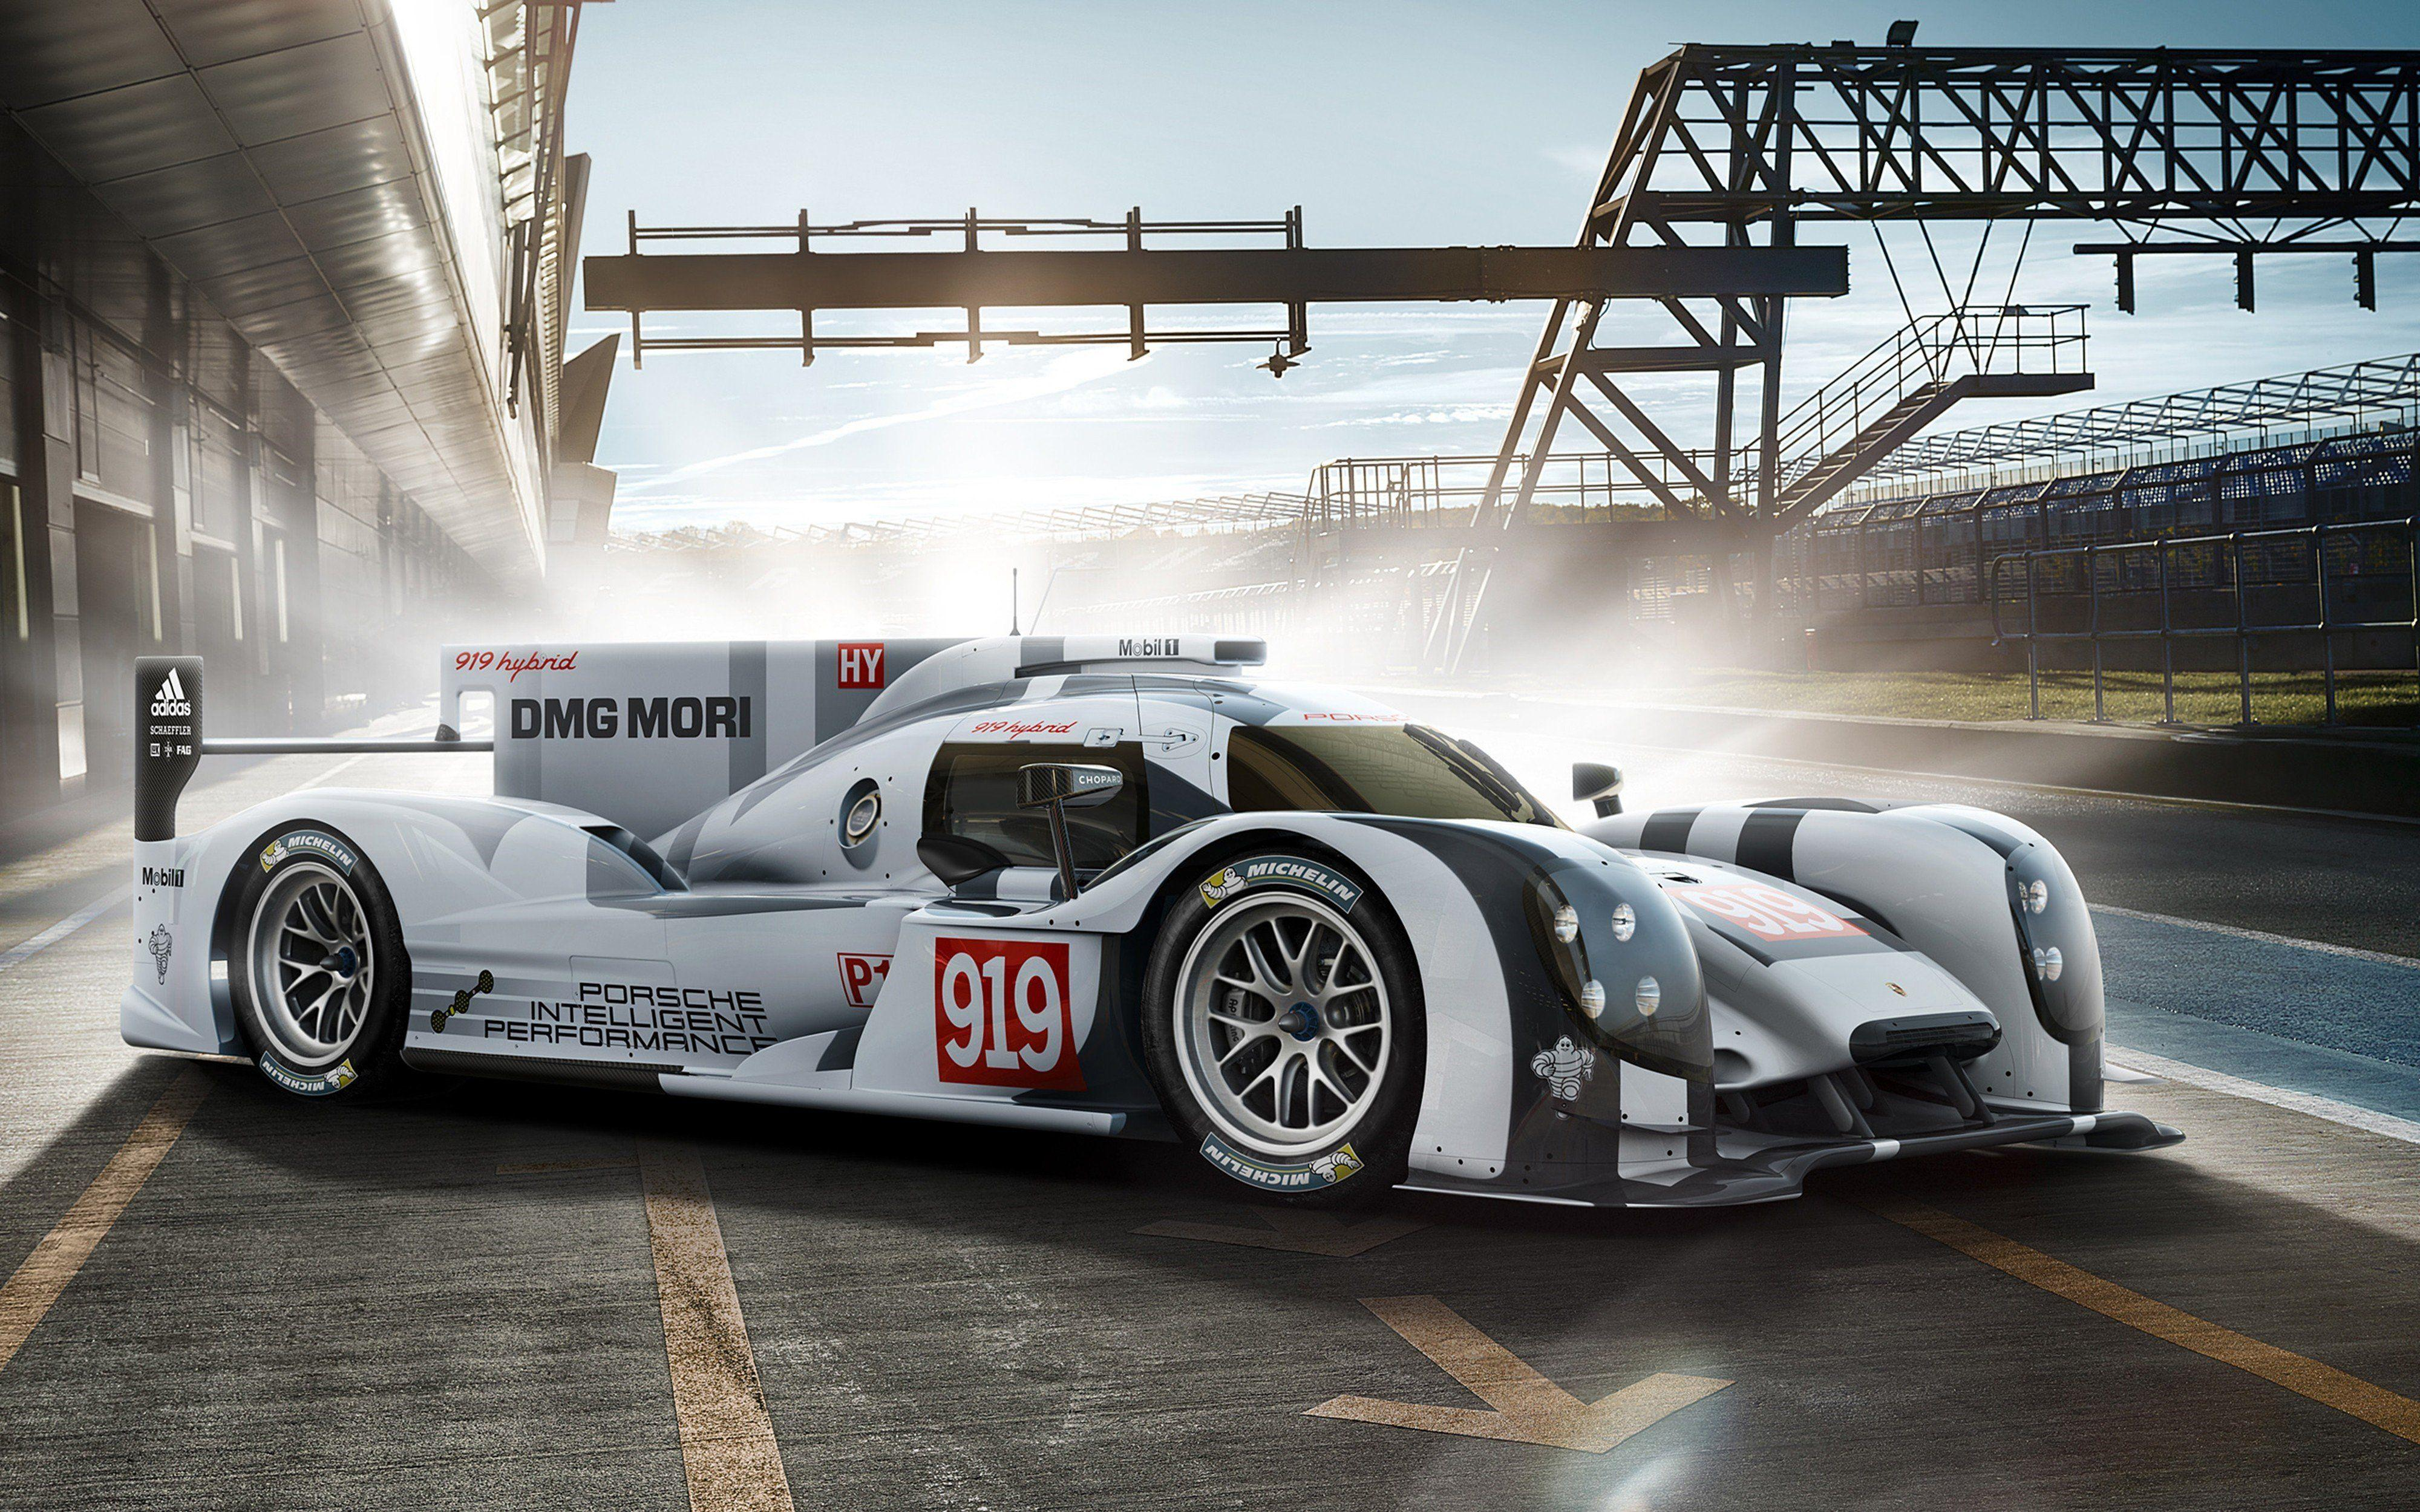 Le Mans Wallpaper Related